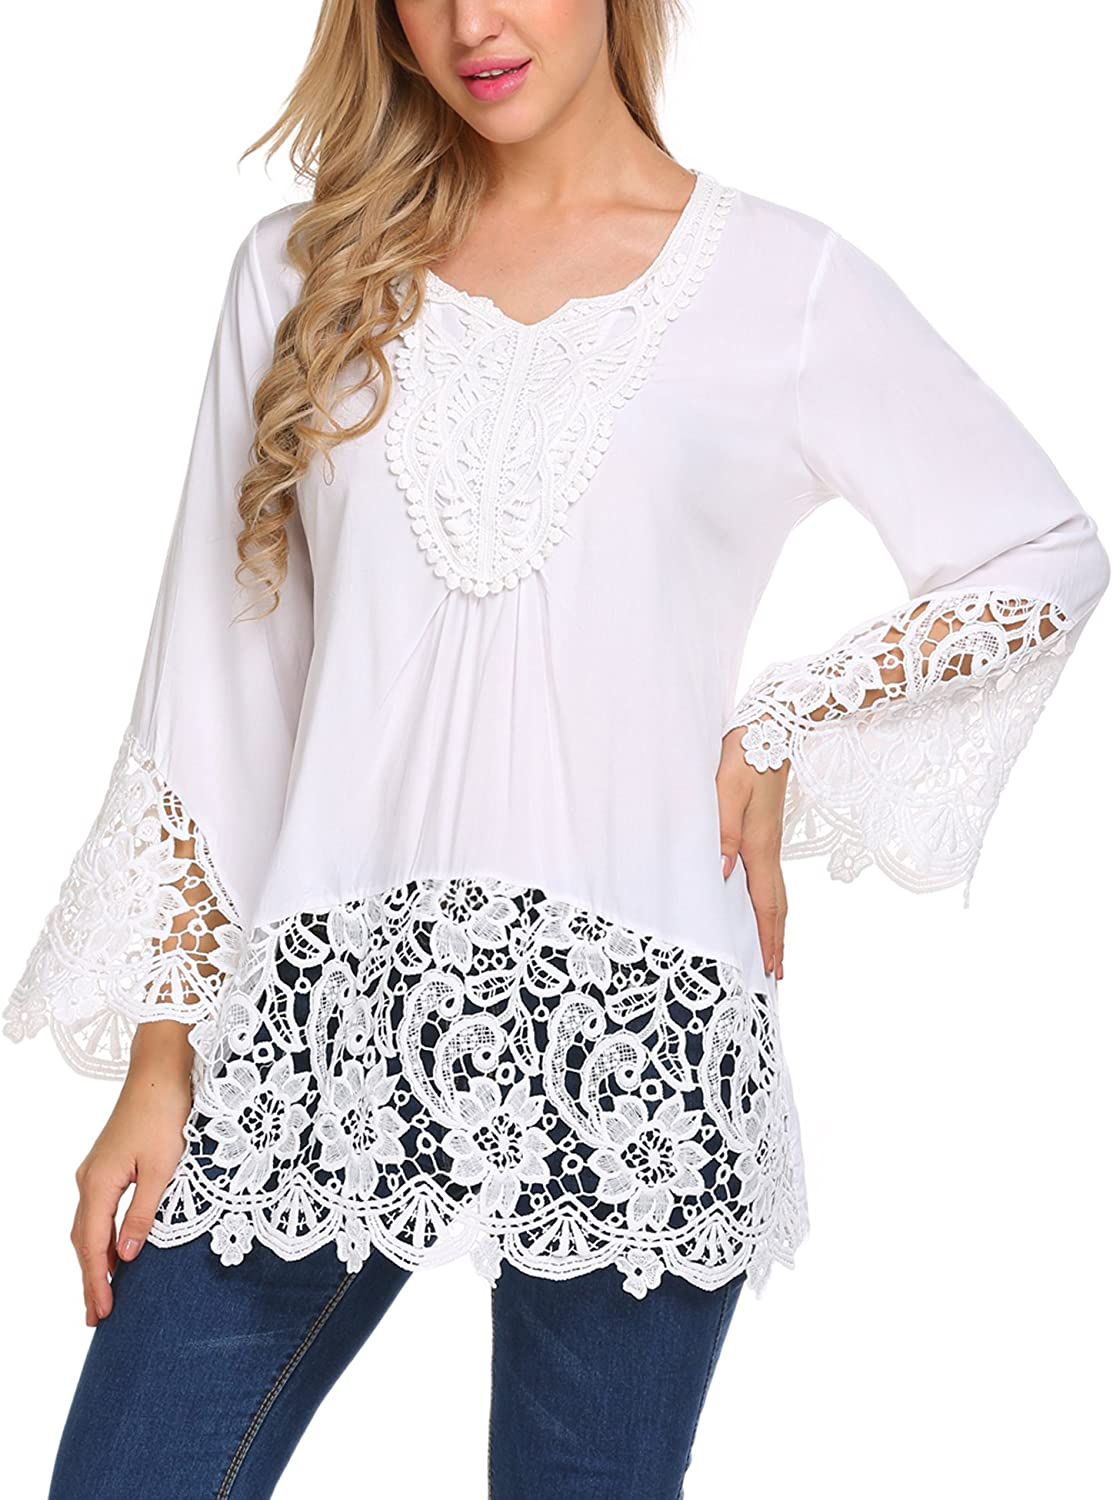 SoTeer Womens Casual V Neck Loose Top Flare Sleeve Lace Splice Blouse Shirt Tops S-XXL: Clothing